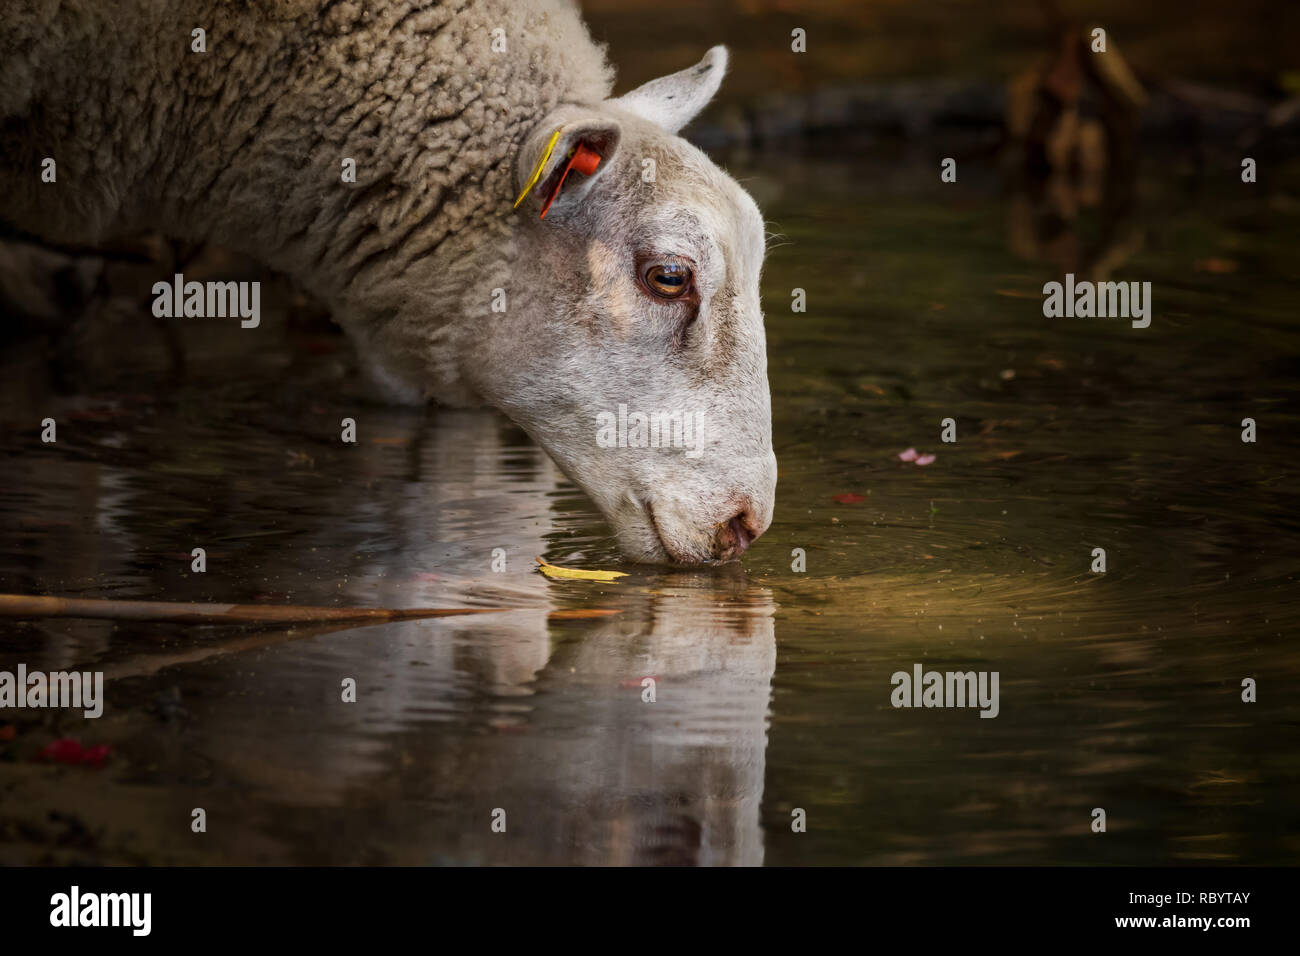 sheep by the watering hole in urban forest in stockholm - Stock Image